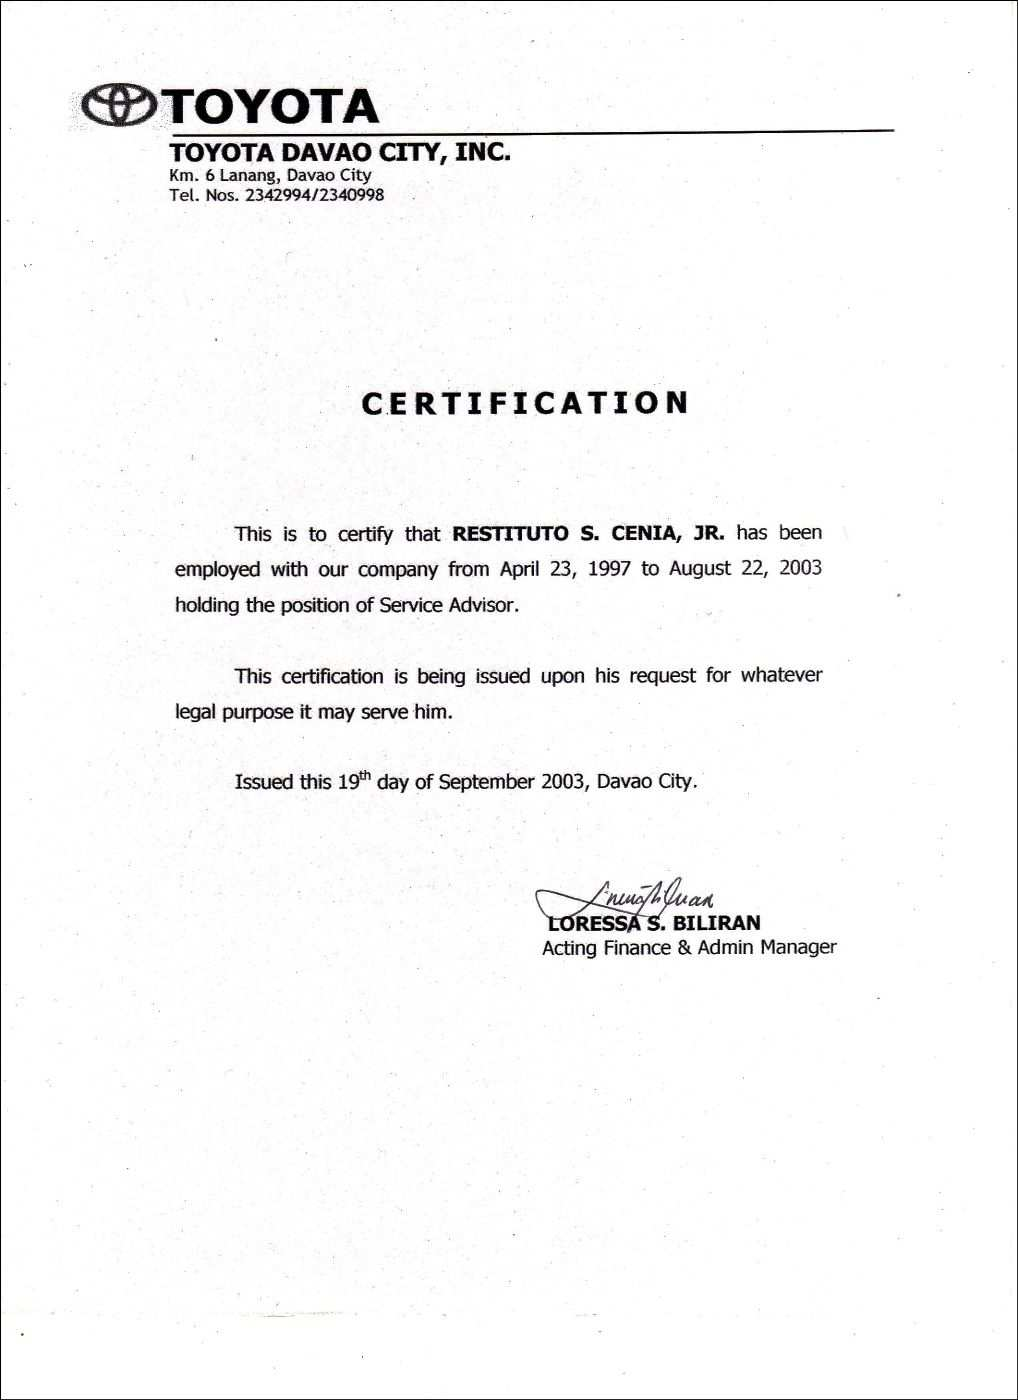 Employment Certificate Sample Word Template Design Word Template Certificate Templates